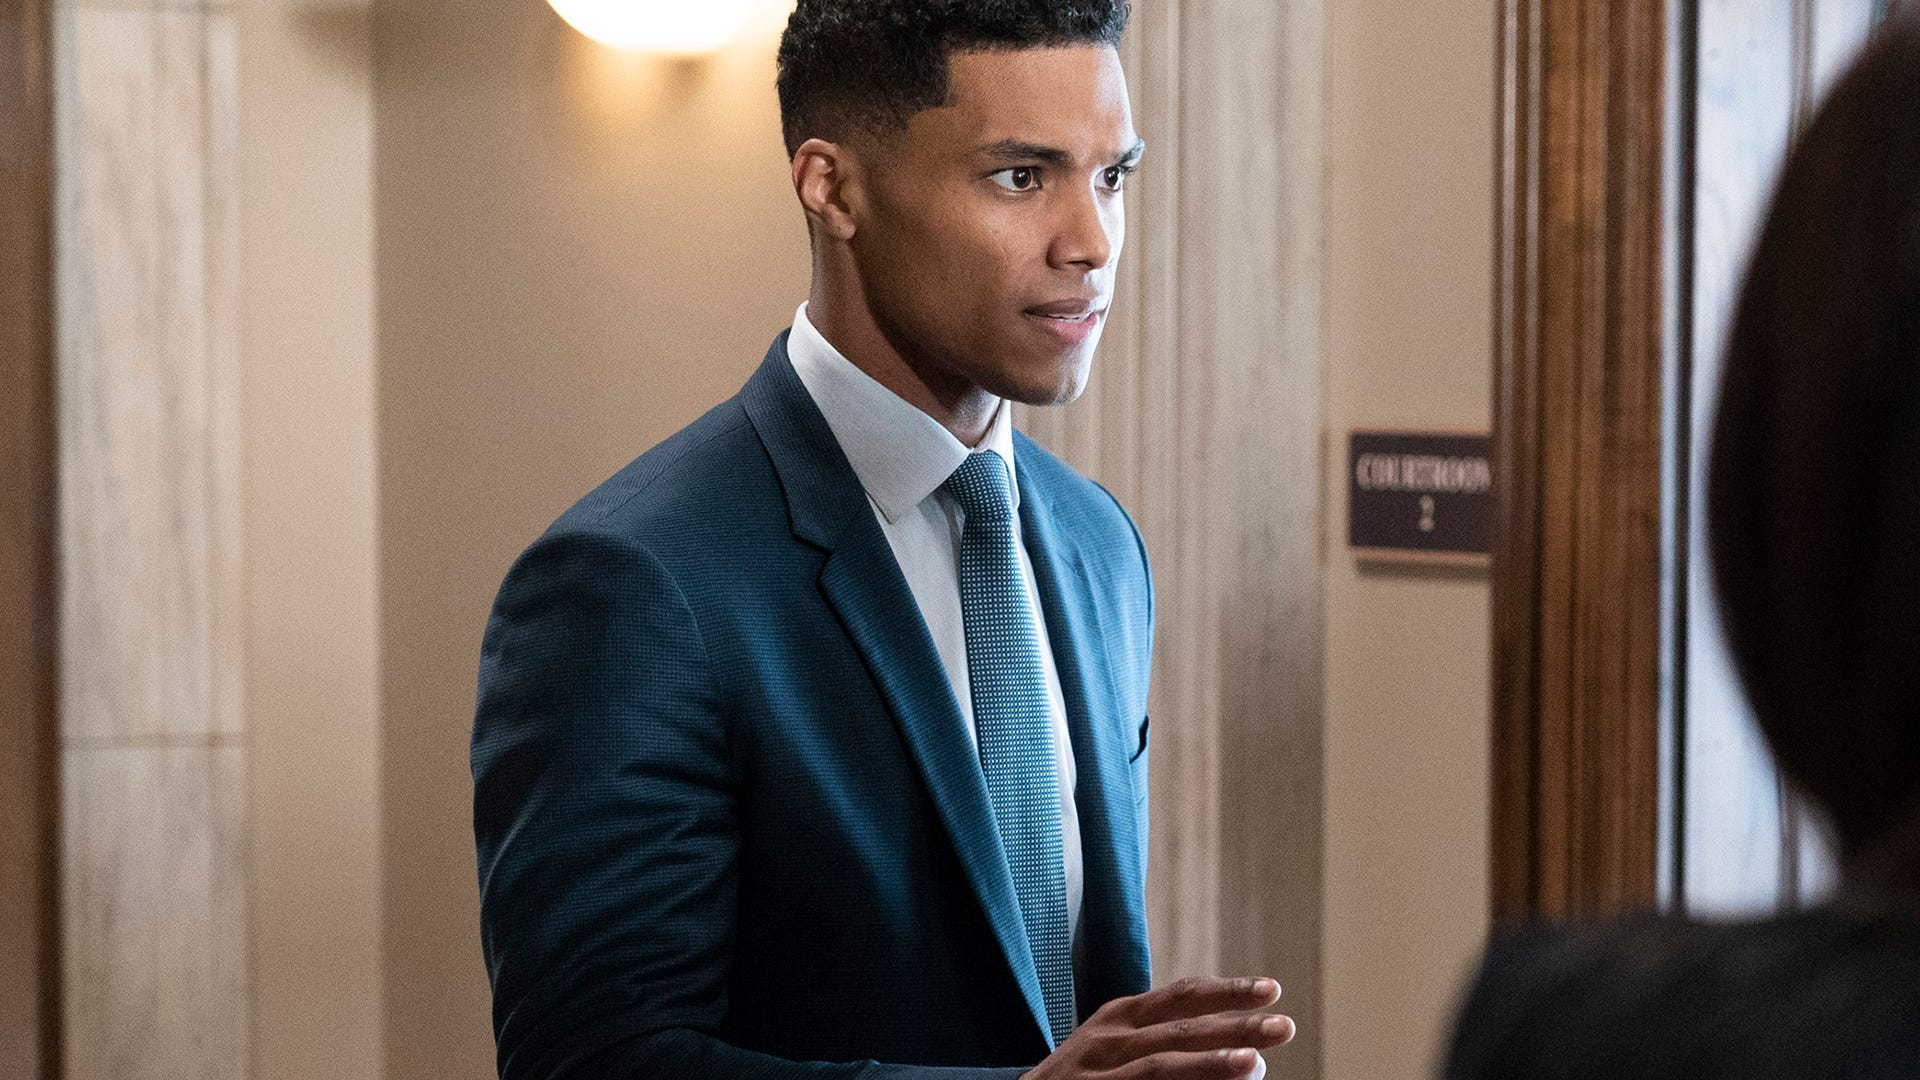 Rome Flynn, How to Get Away with Murder